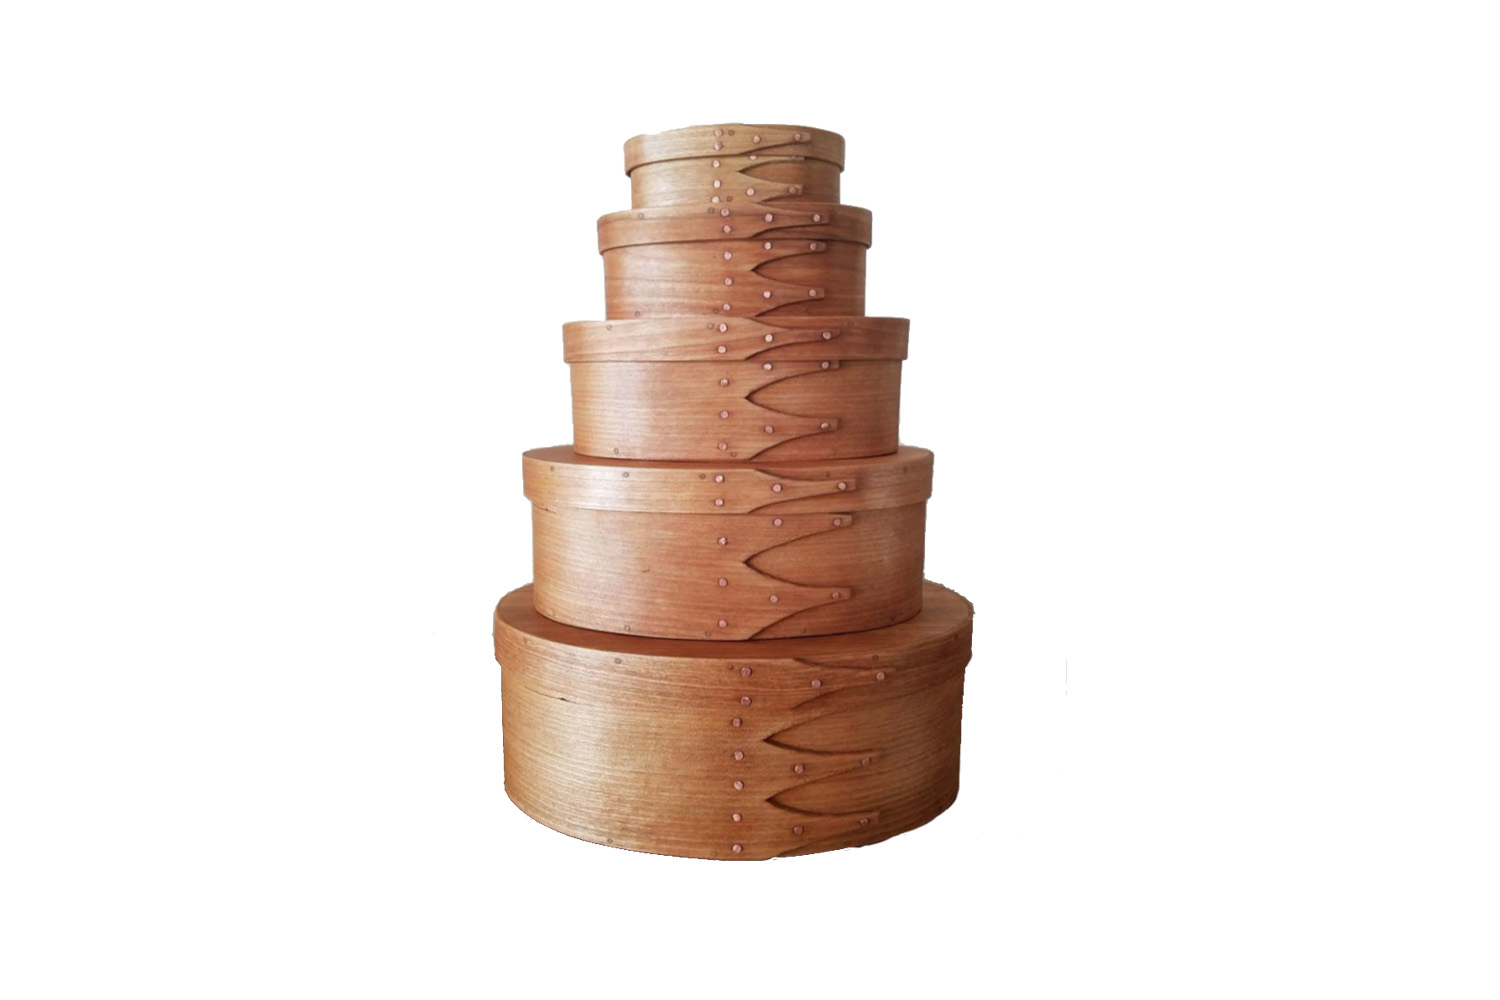 a set of 5 cherrywood shaker boxes is \$\165 from thistle dew woods on etsy. 26